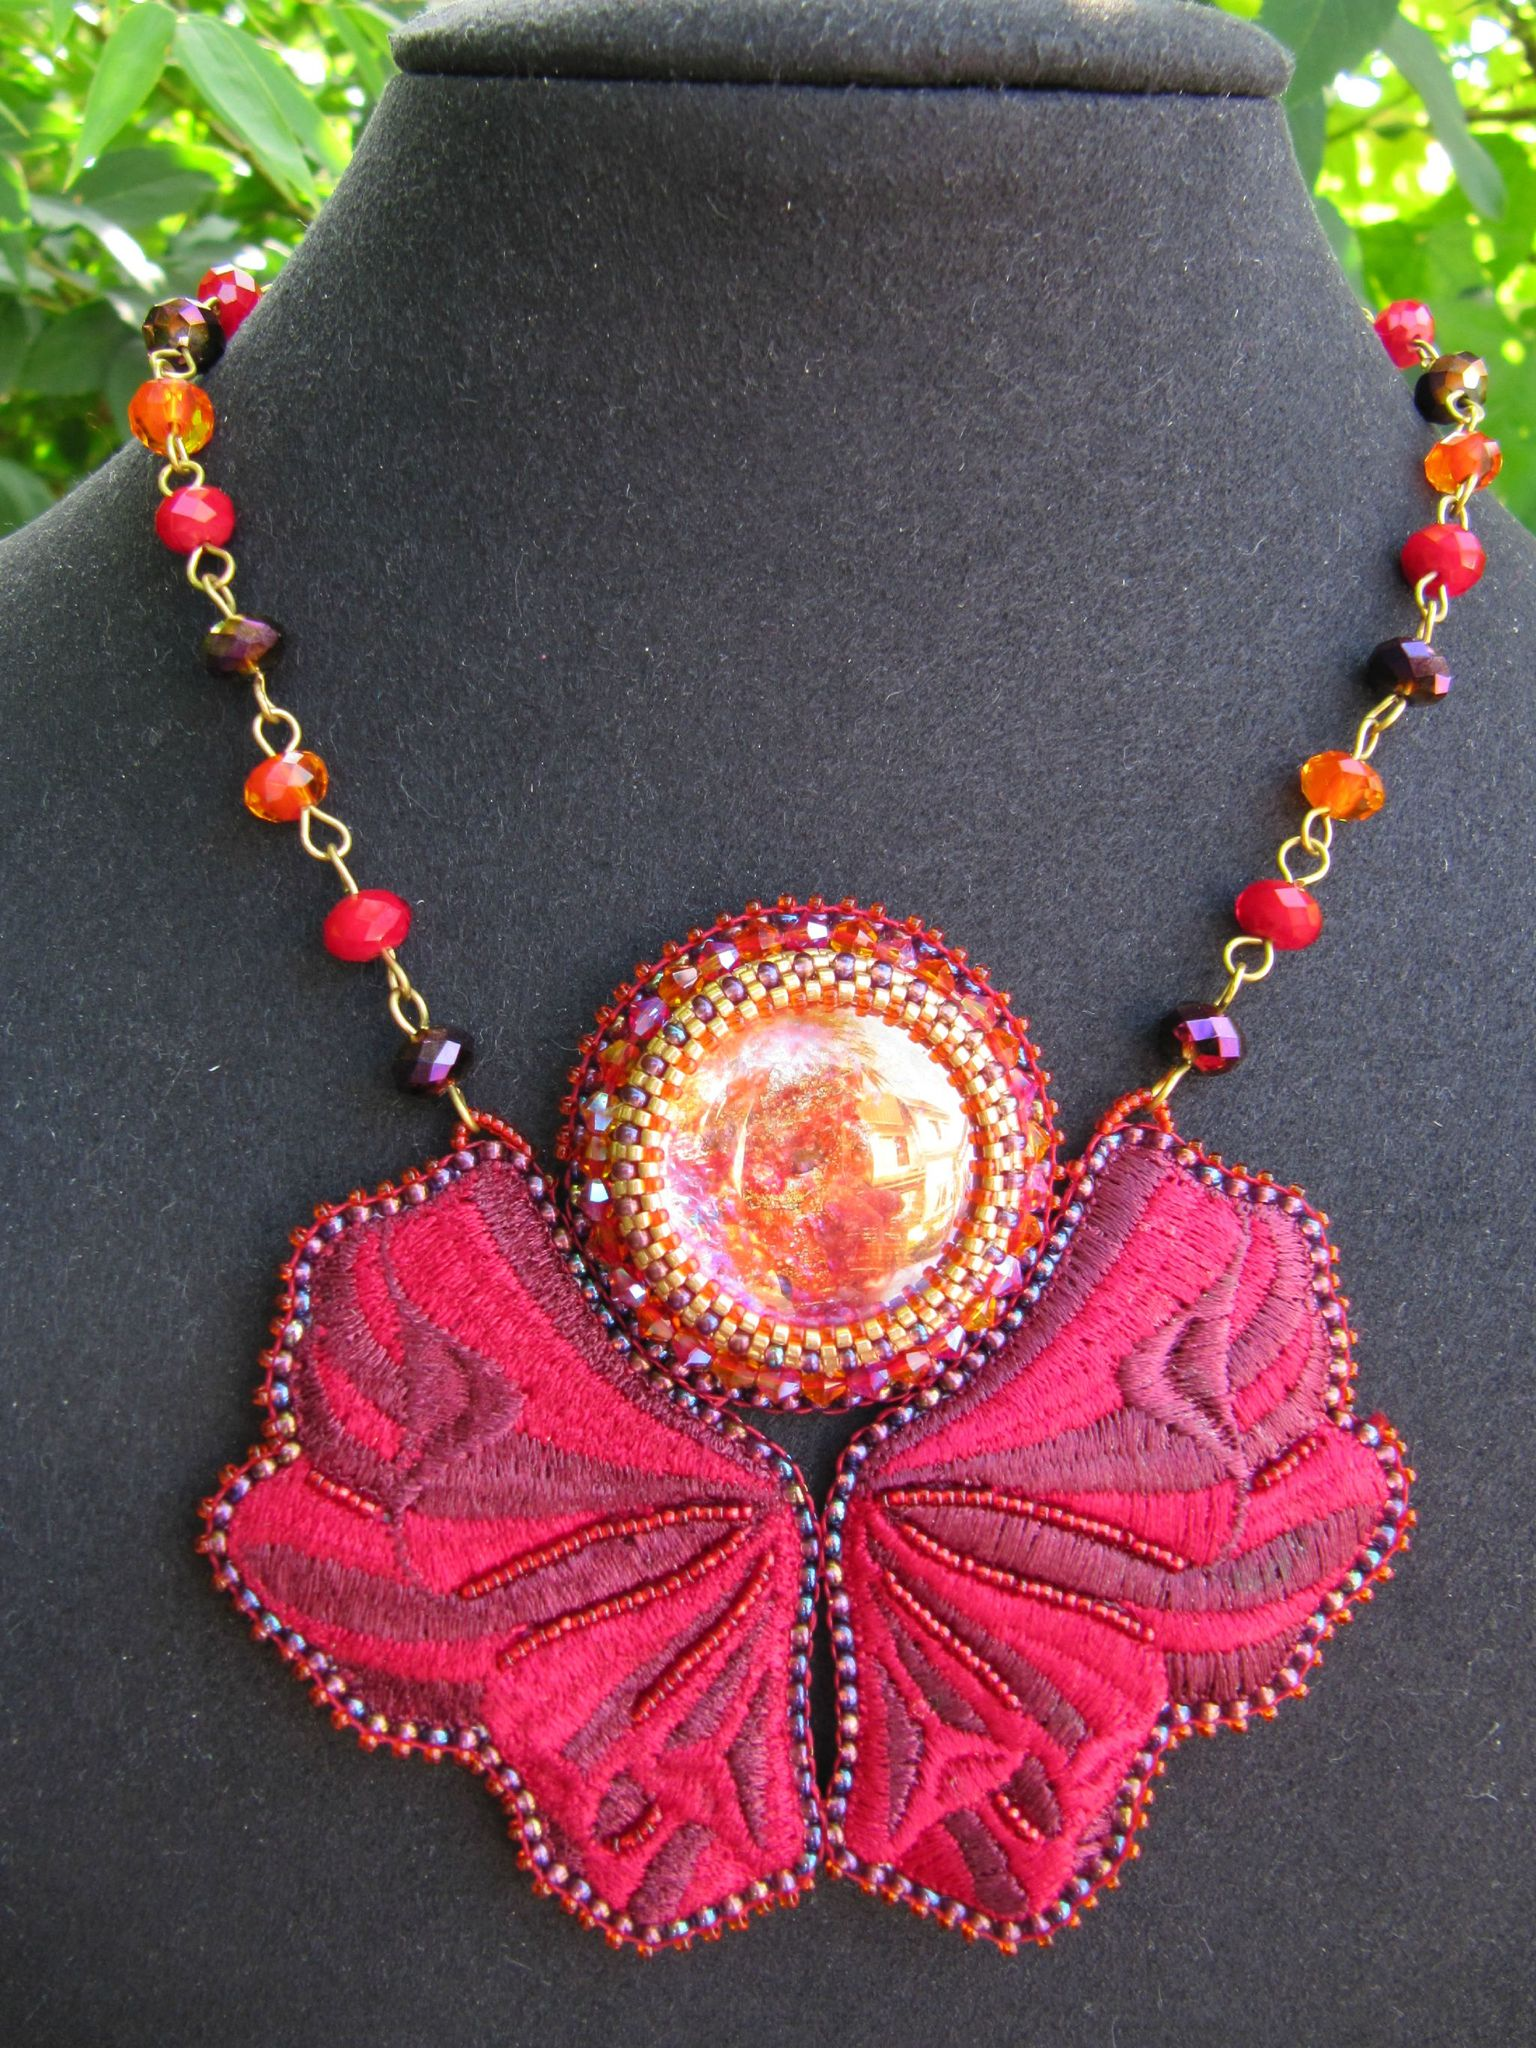 Collier brodé papillon rouge